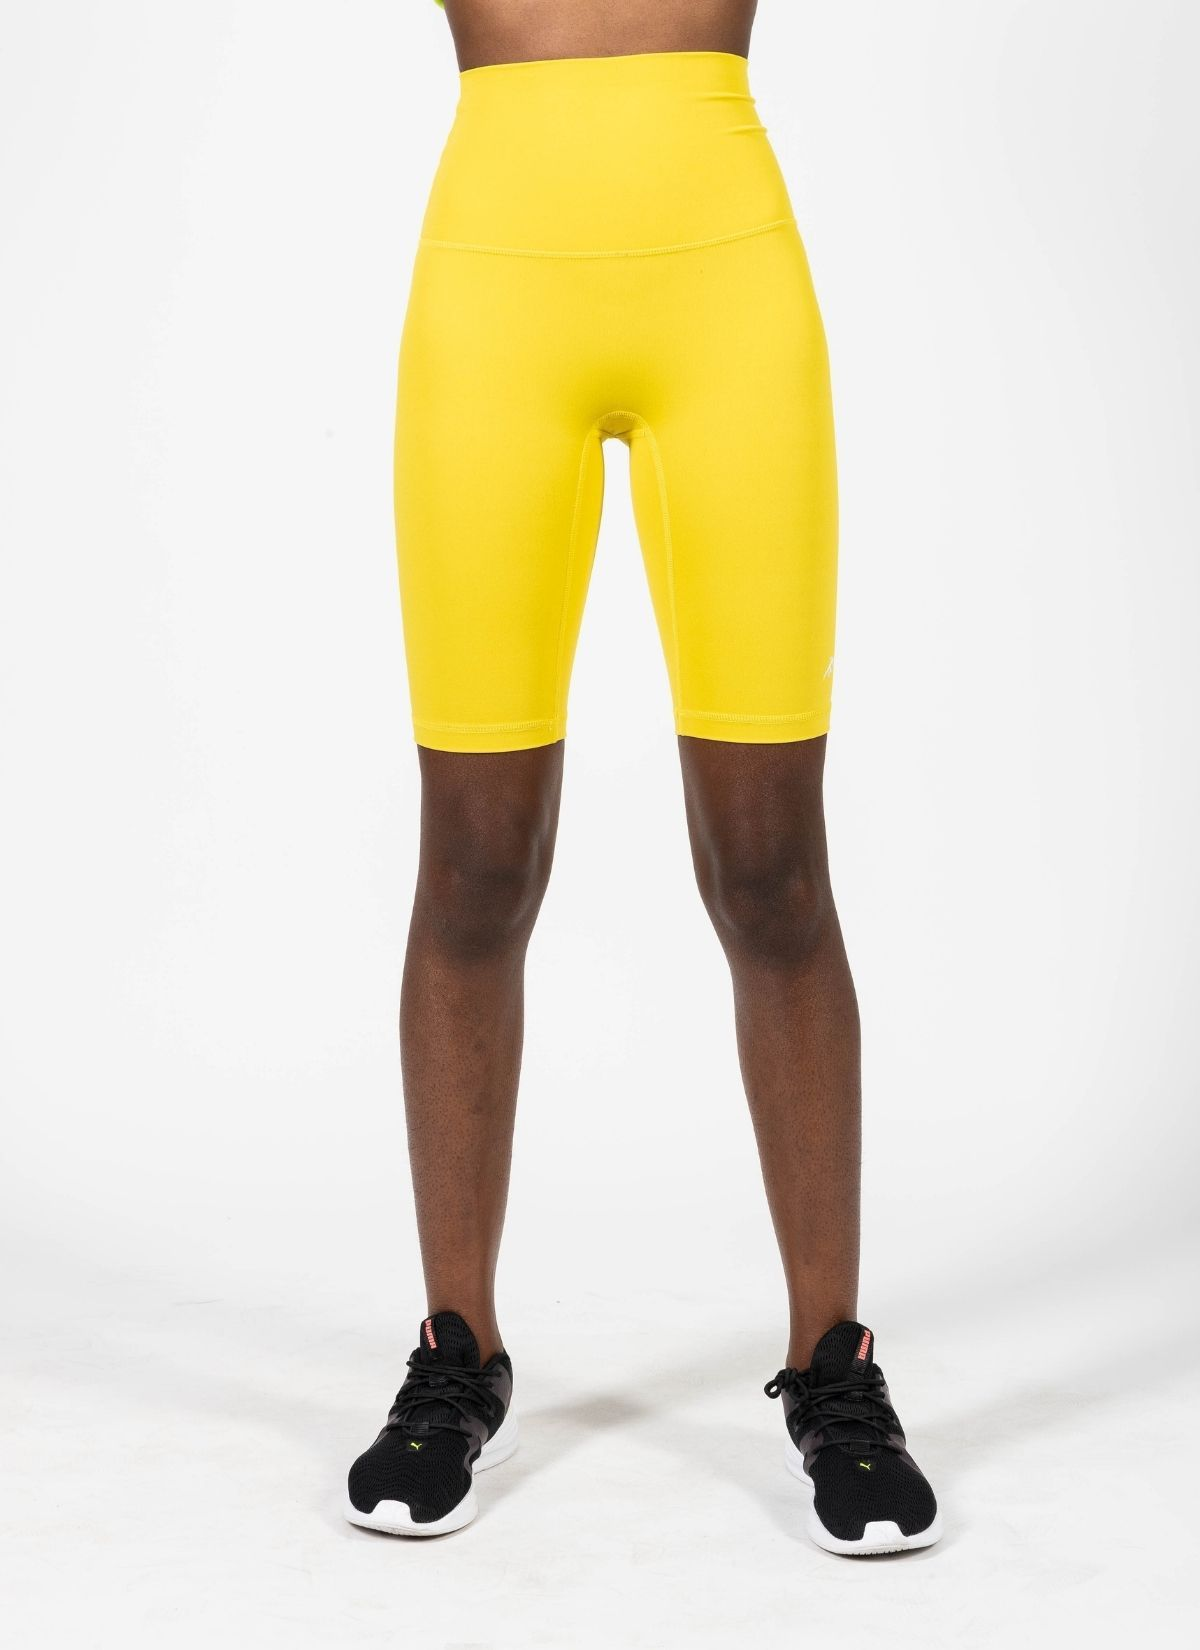 Endurance Yellow Biker Shorts